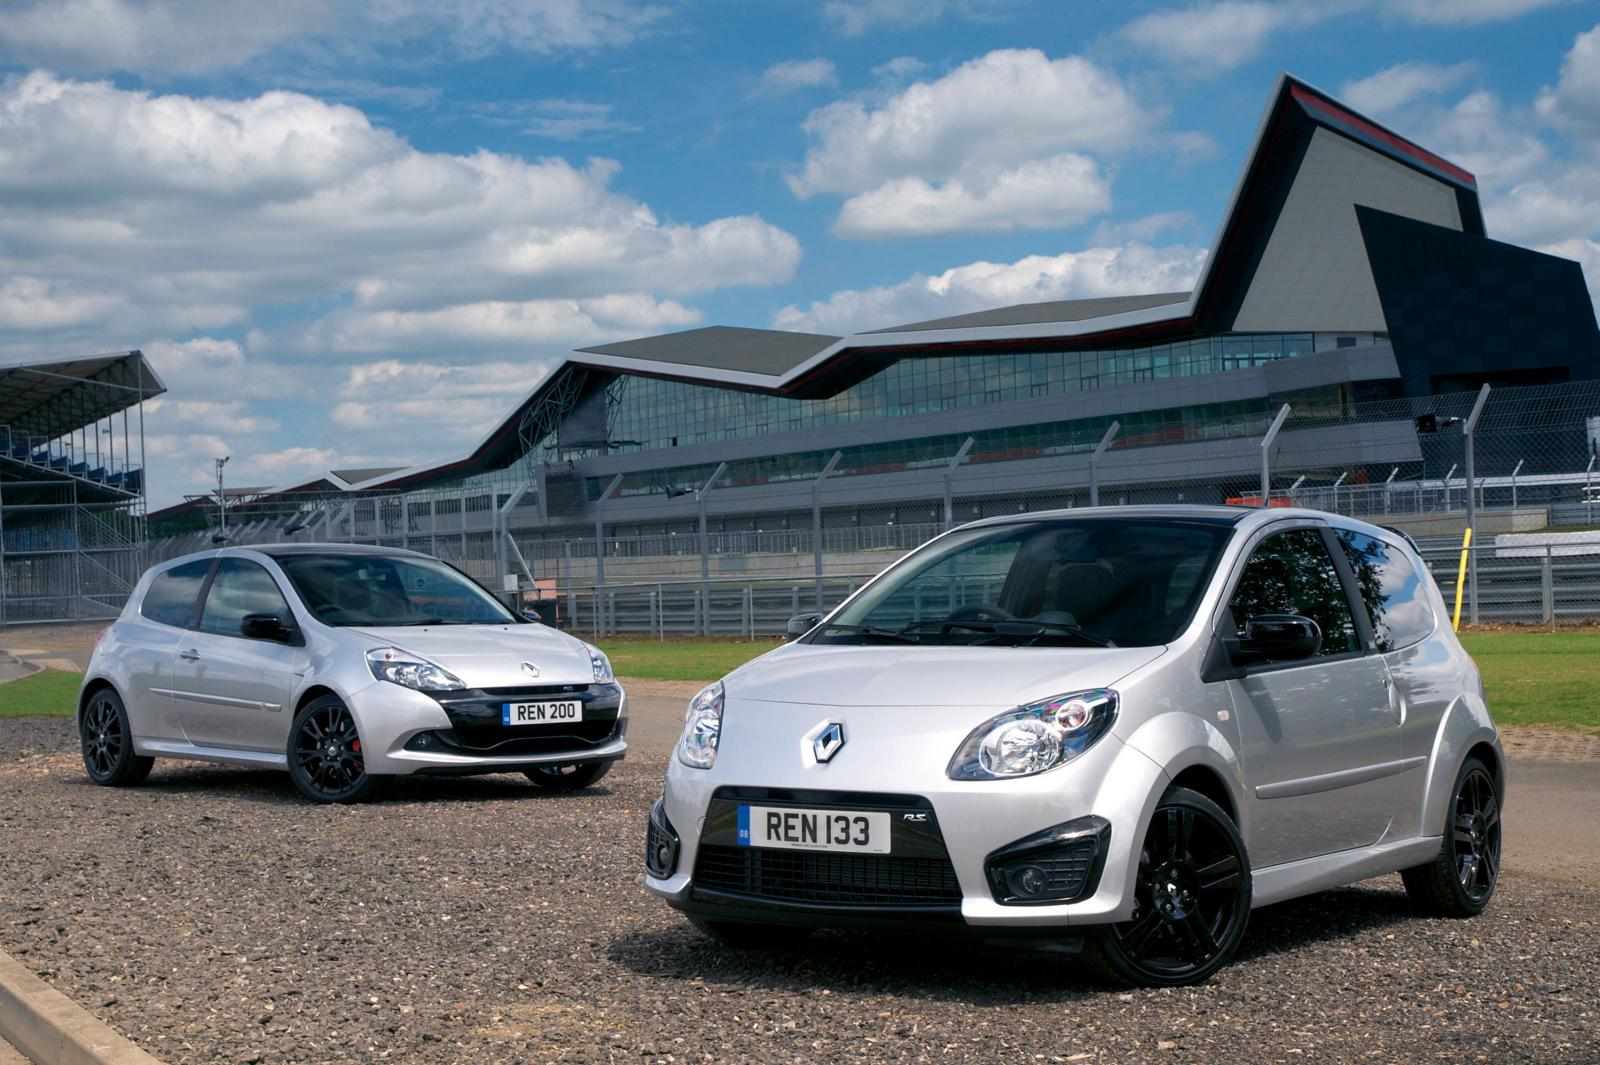 twingo renaultsport 133 and clio renaultsport 200 silverstone gp. Black Bedroom Furniture Sets. Home Design Ideas